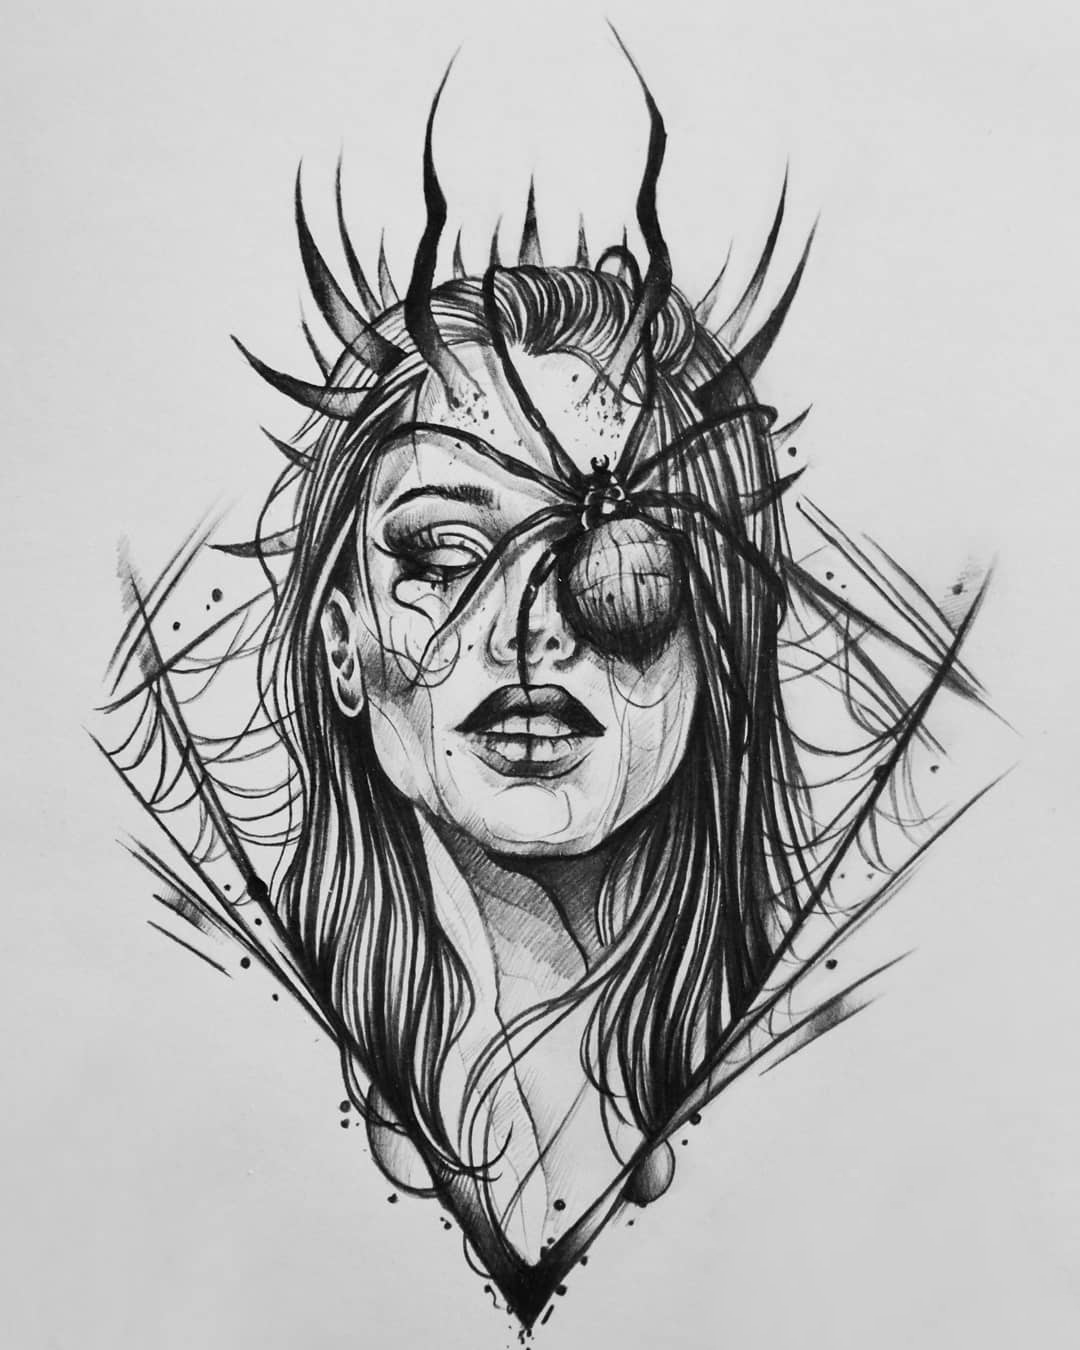 Handmade Sketches For Future Best Tattoos